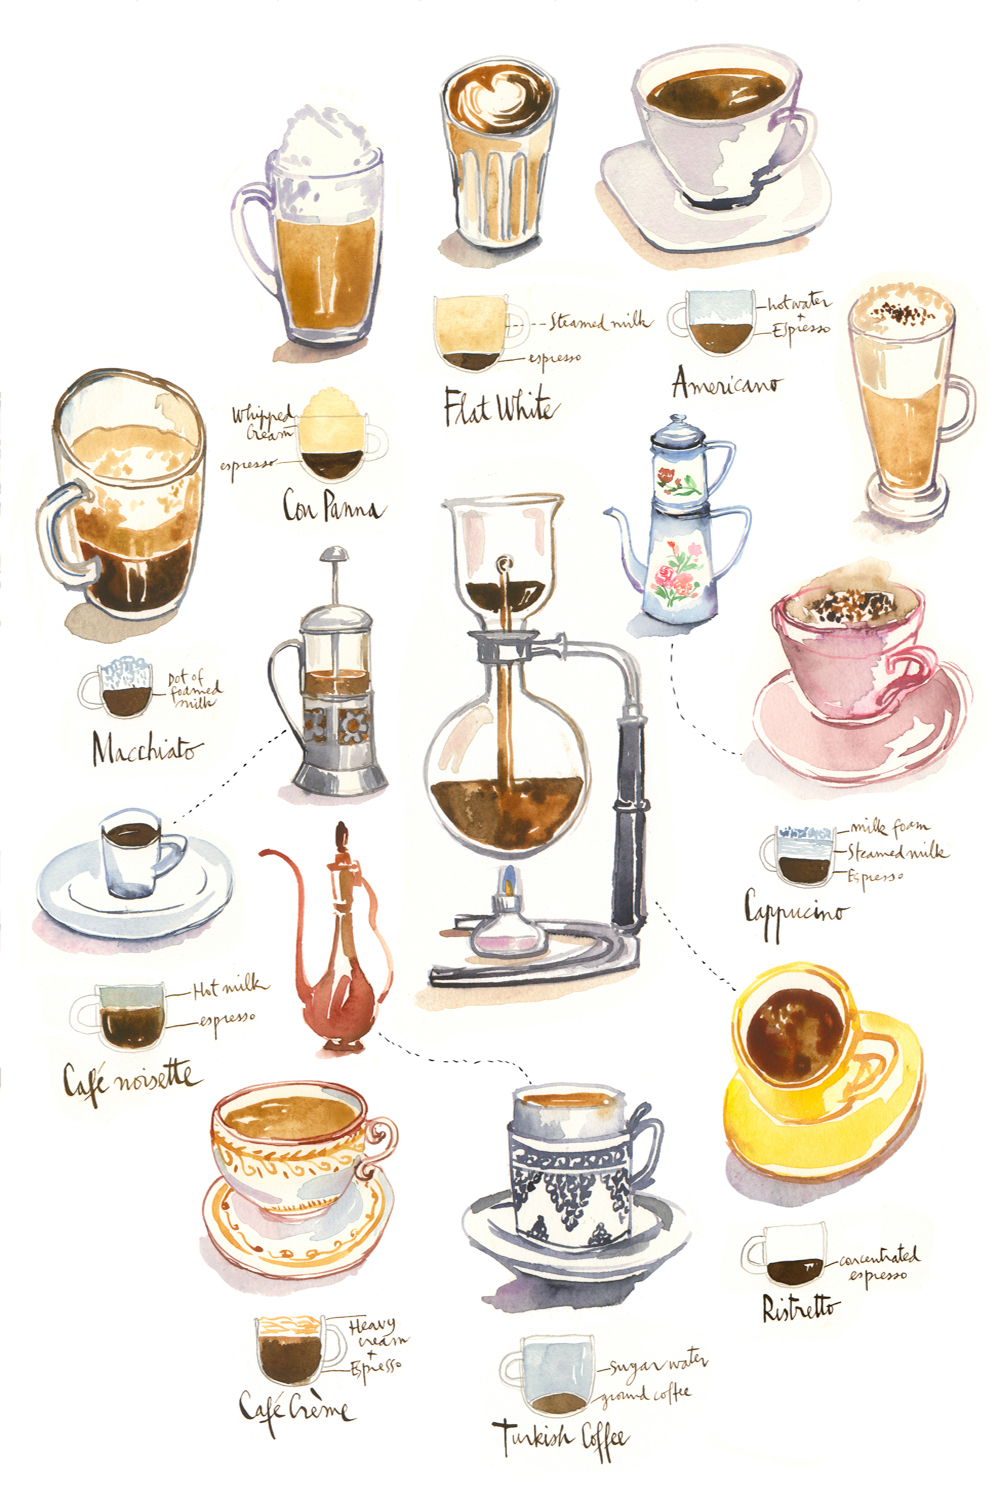 a white print showing various types of coffee beverages and brew solutions, including Turkish coffee, Americano, and Macchiato